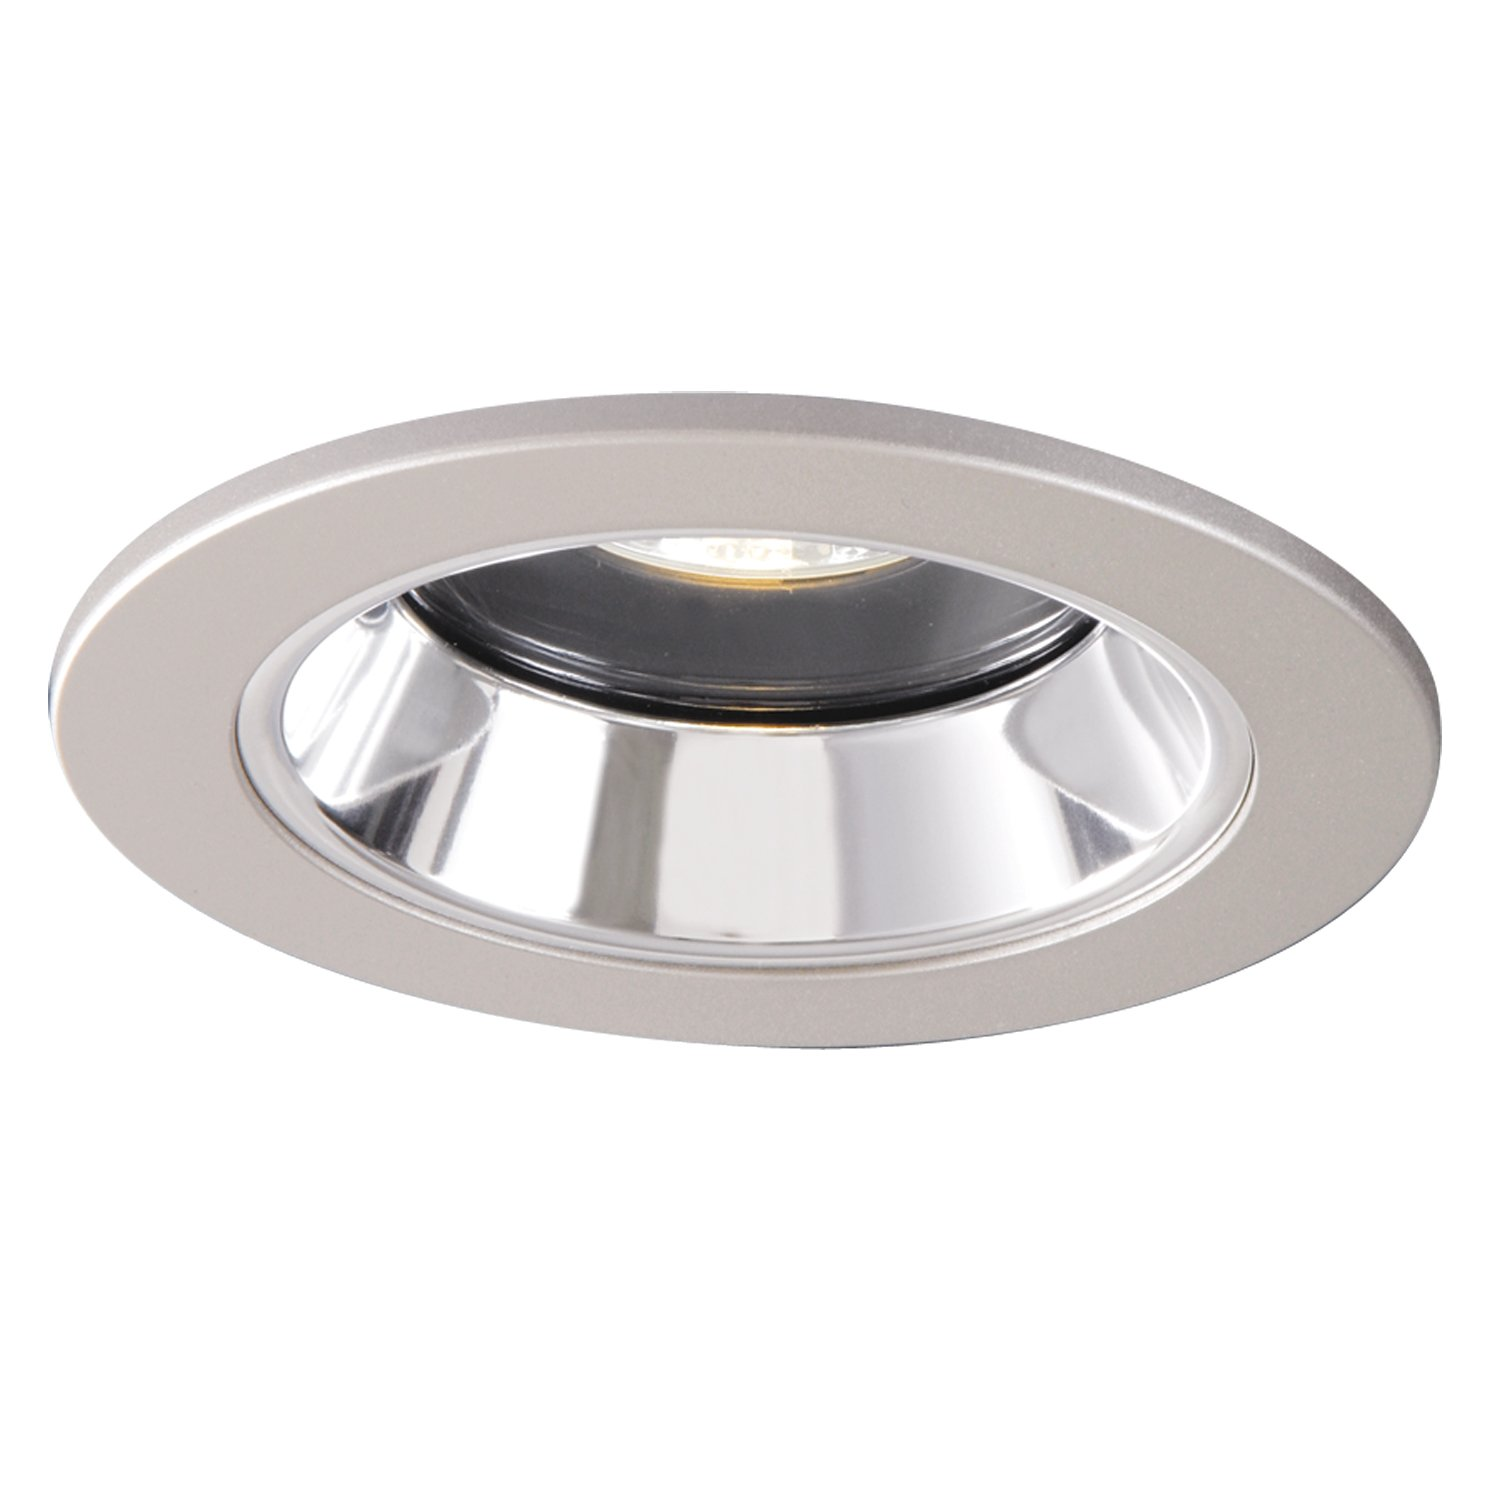 Amazon halo recessed 1951ps 4 inch lensed showerlight white amazon halo recessed 1951ps 4 inch lensed showerlight white trim with clear specular splay reflector home improvement aloadofball Gallery